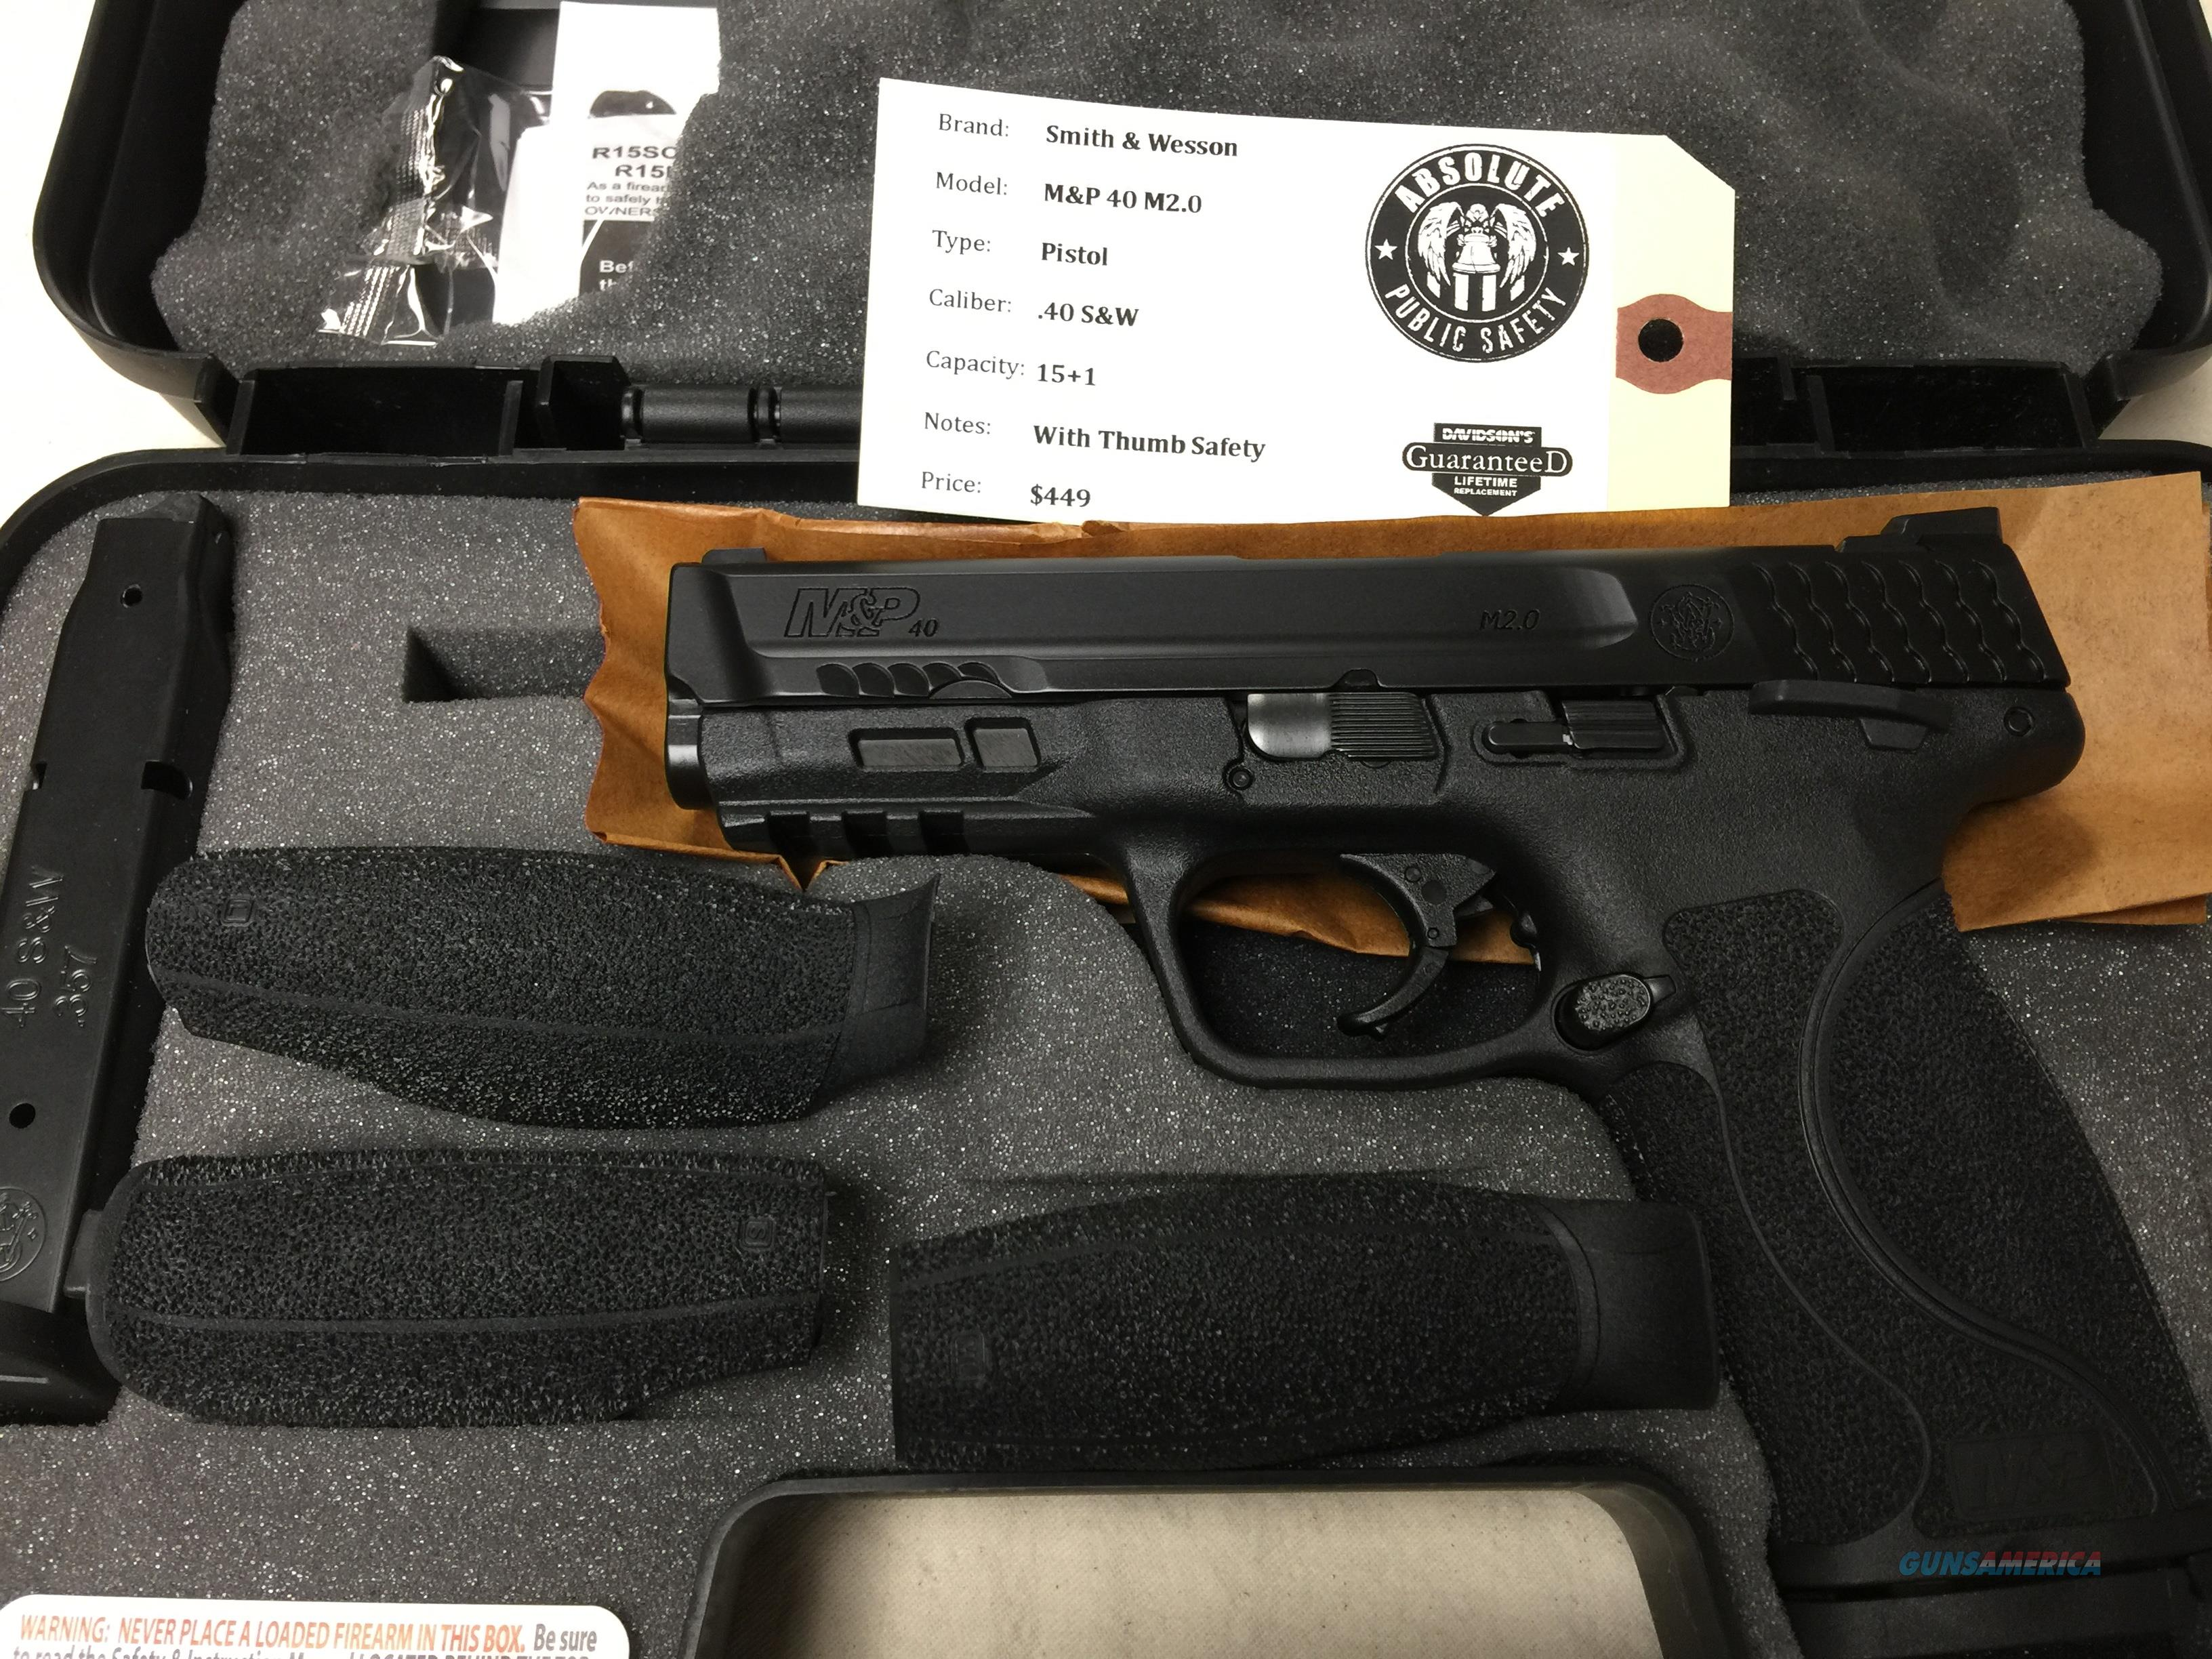 Smith & Wesson M&P40 M2.0 40 S&W 15+1 Thumb Safety 11525 NIB  Guns > Pistols > Smith & Wesson Pistols - Autos > Polymer Frame